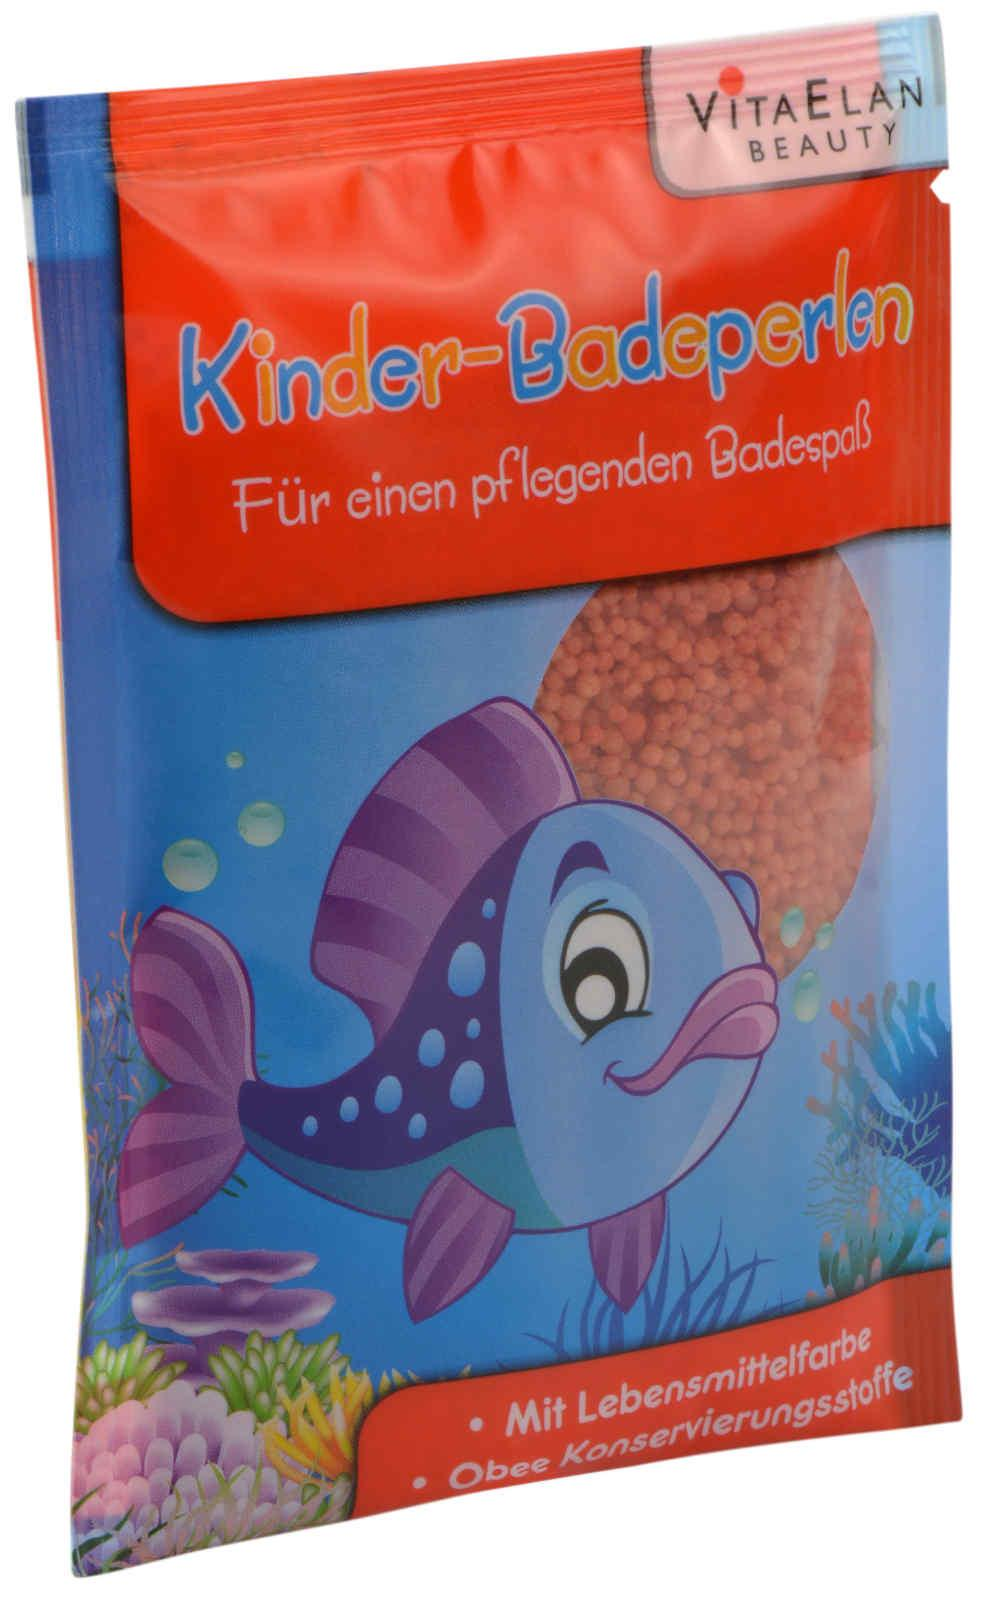 Kinderbadeperlen